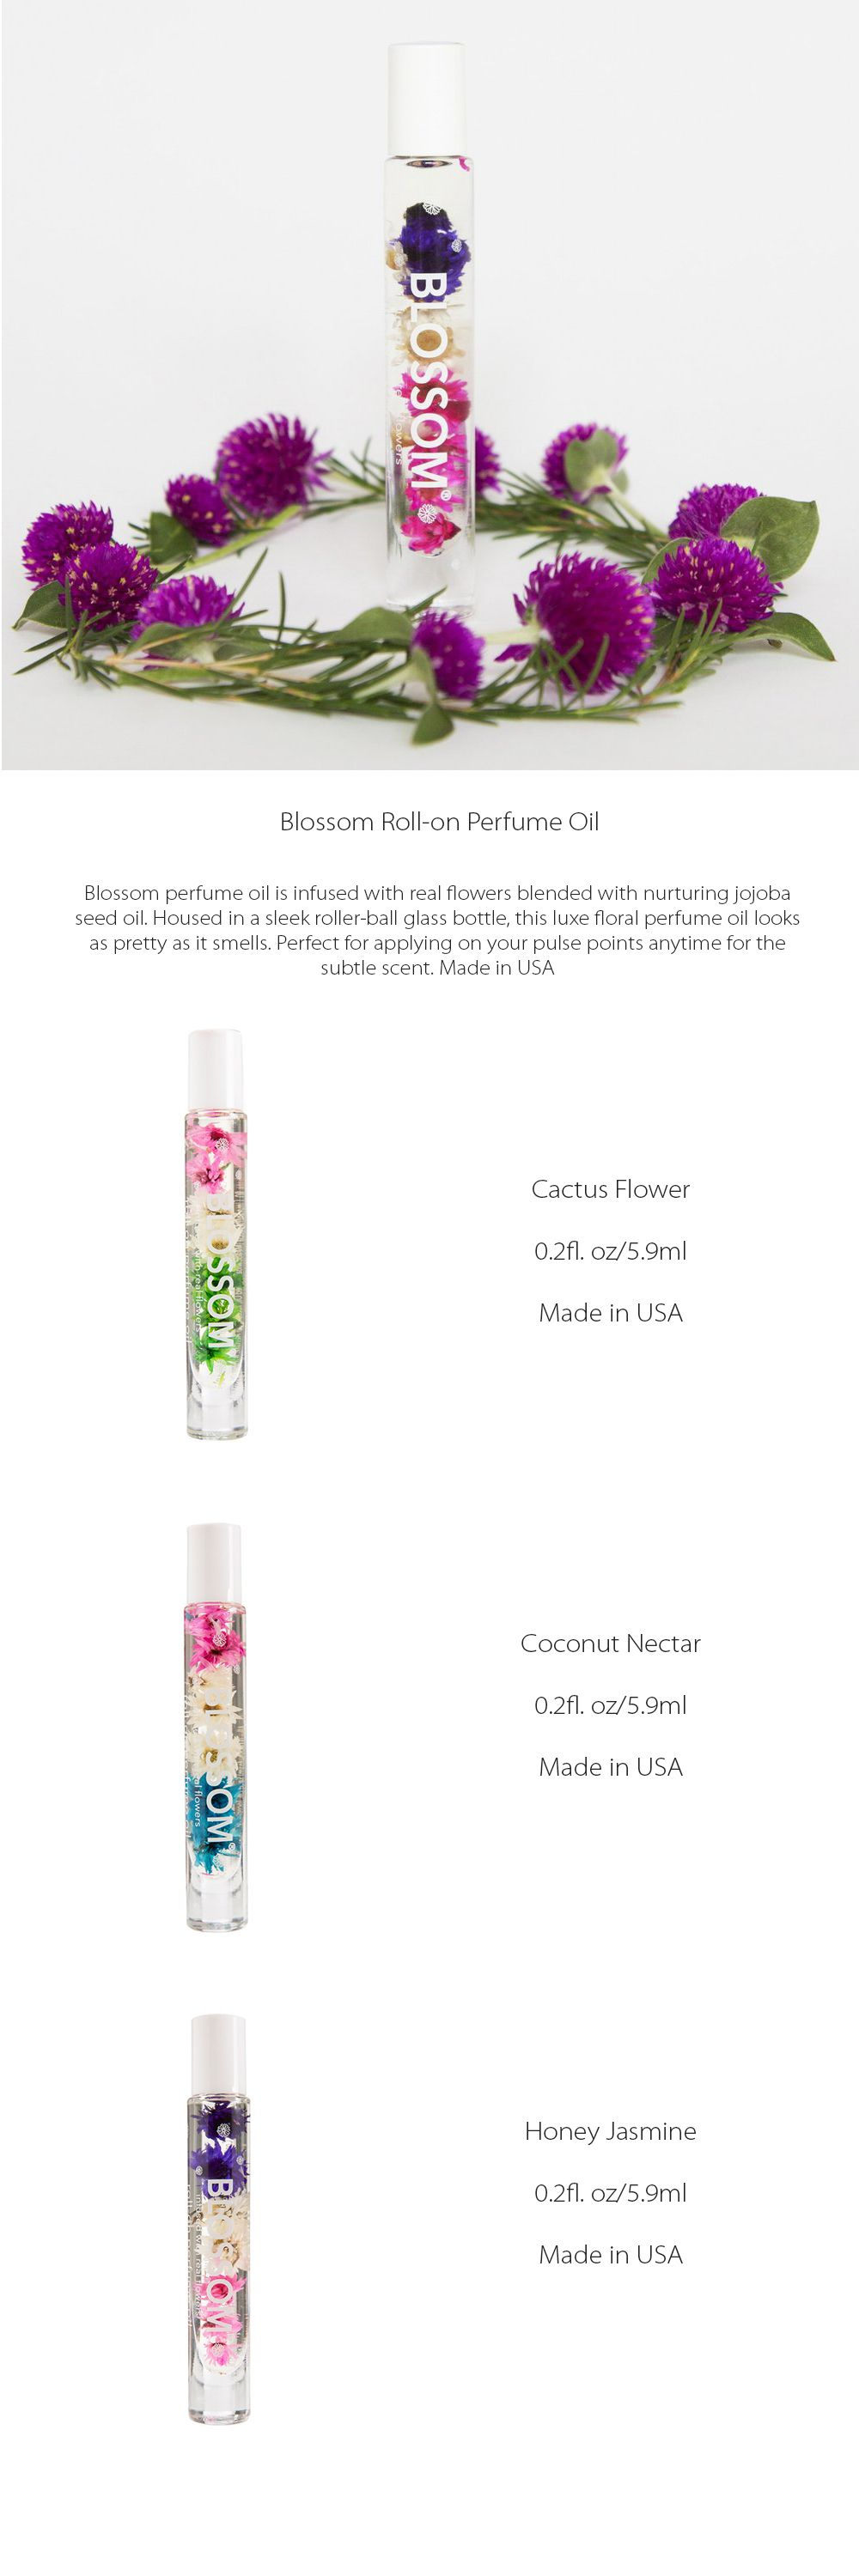 Blossom Roll-on Perfume Oil Fresh Fragrant Oil